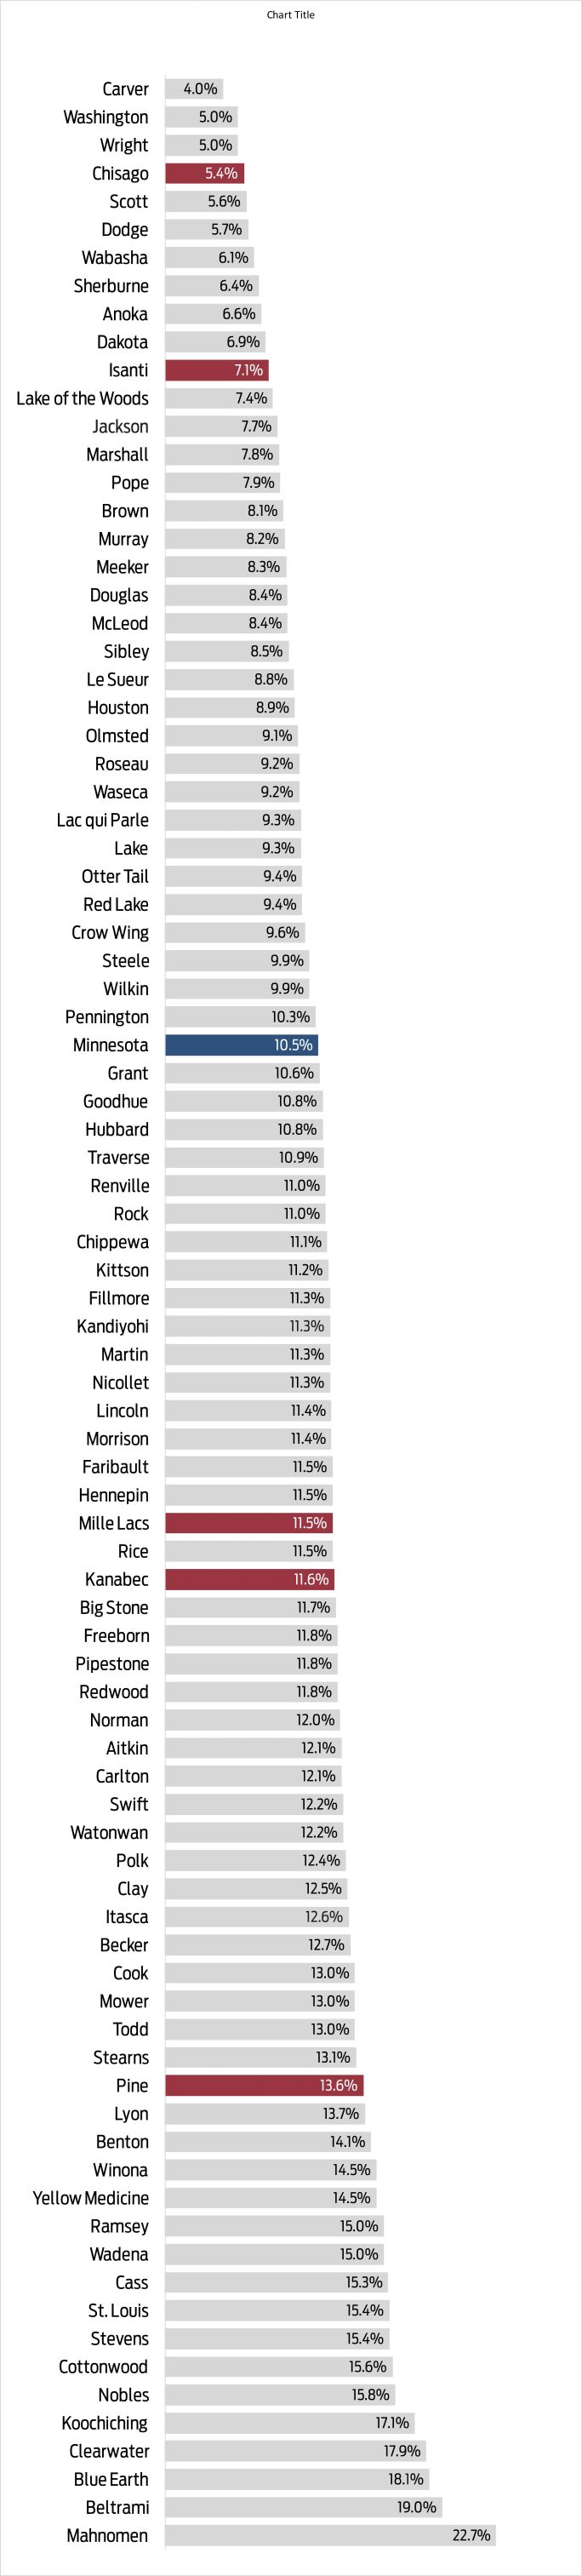 Area poverty rate declines